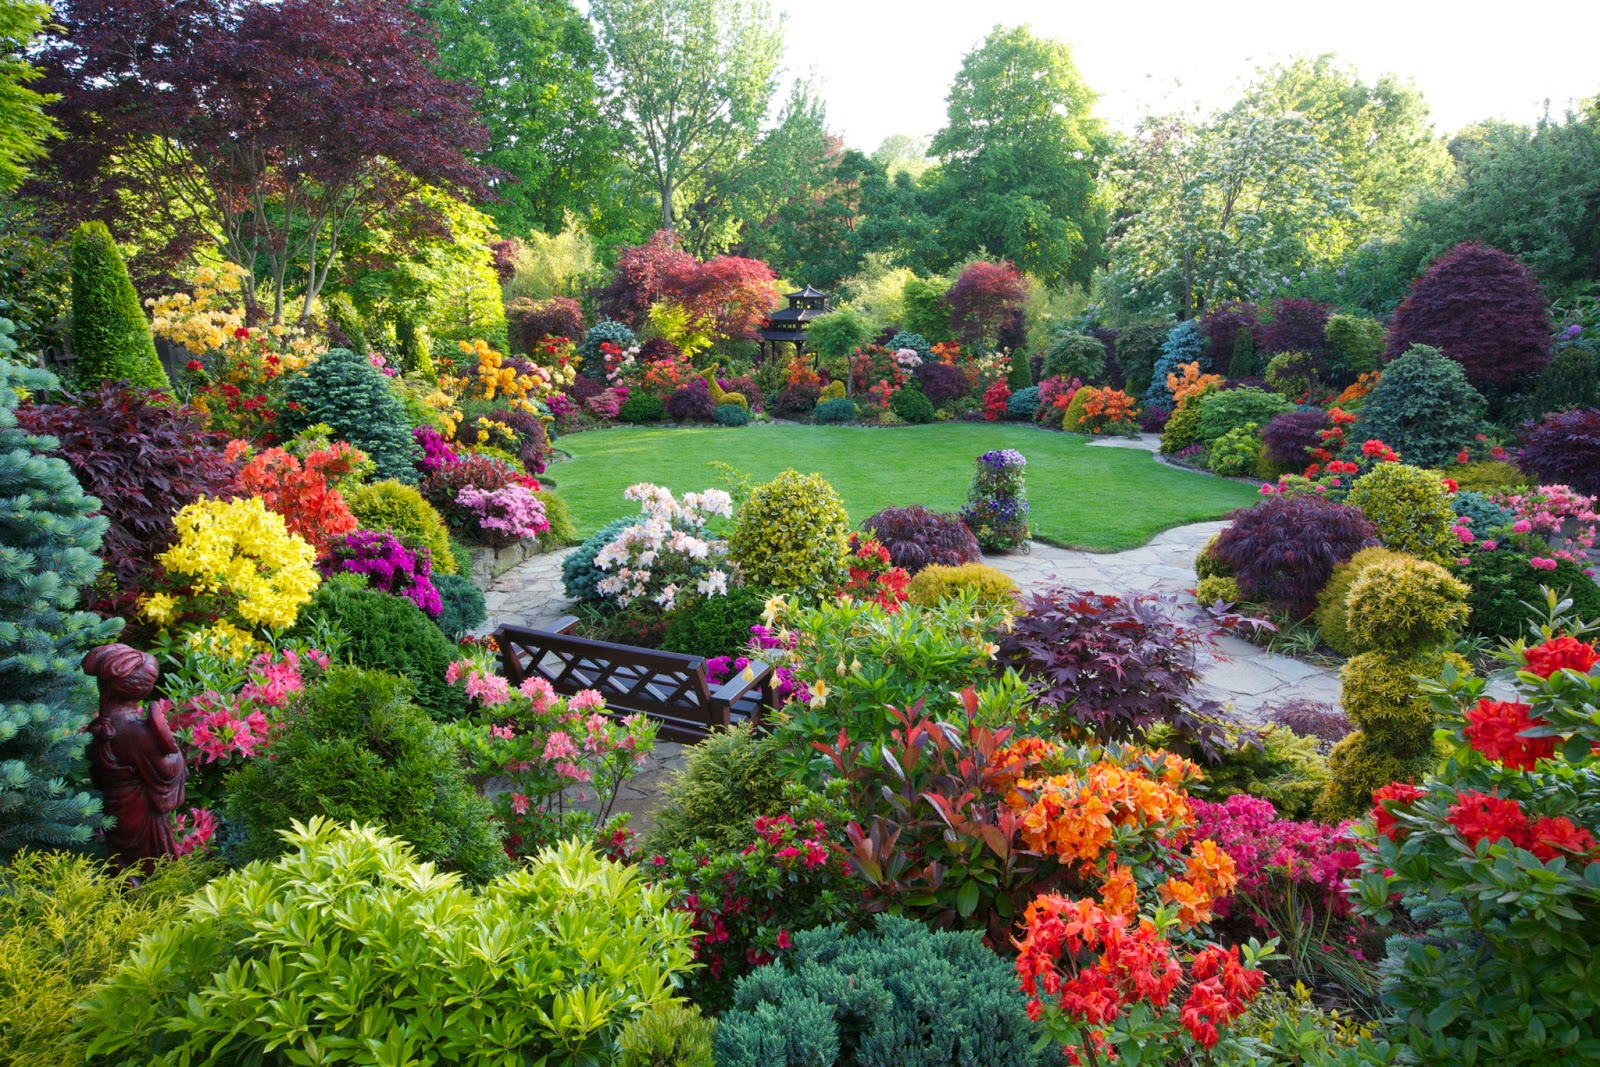 20-Of-The-Most-Beautiful-Nature-Made-And-Man-Made-Flower-Gardens-In-The-World-31.jpg